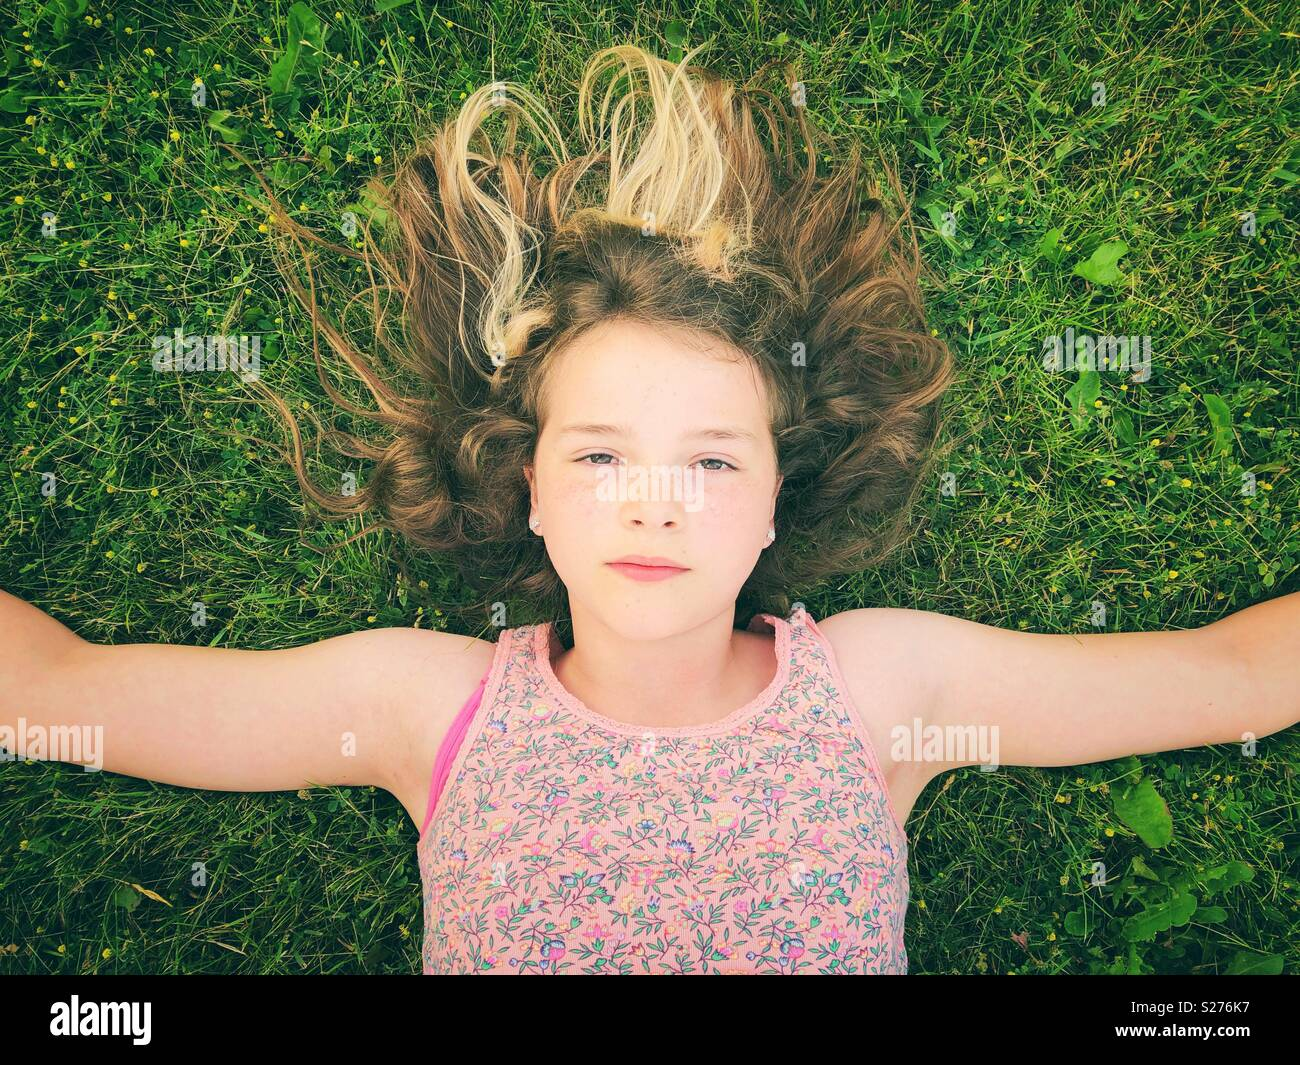 11 year old girl laying in the grass with arms out and serious expression on her face - Stock Image